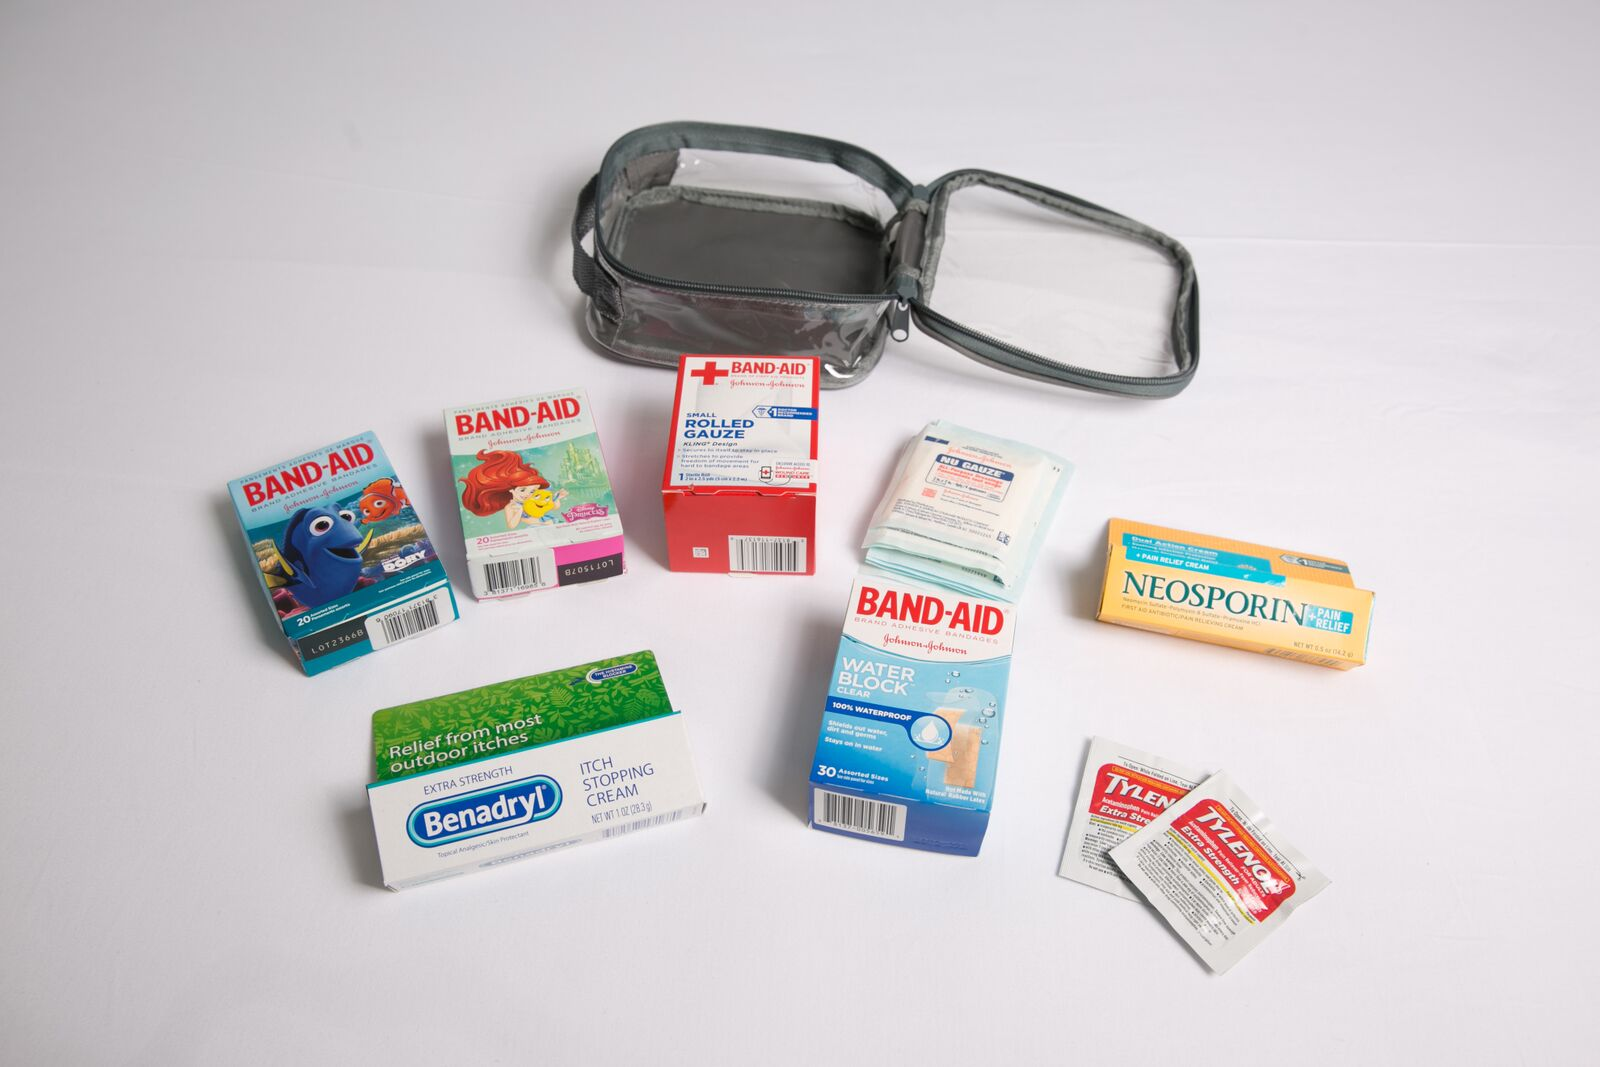 First aid kit for tropical vacation packing list